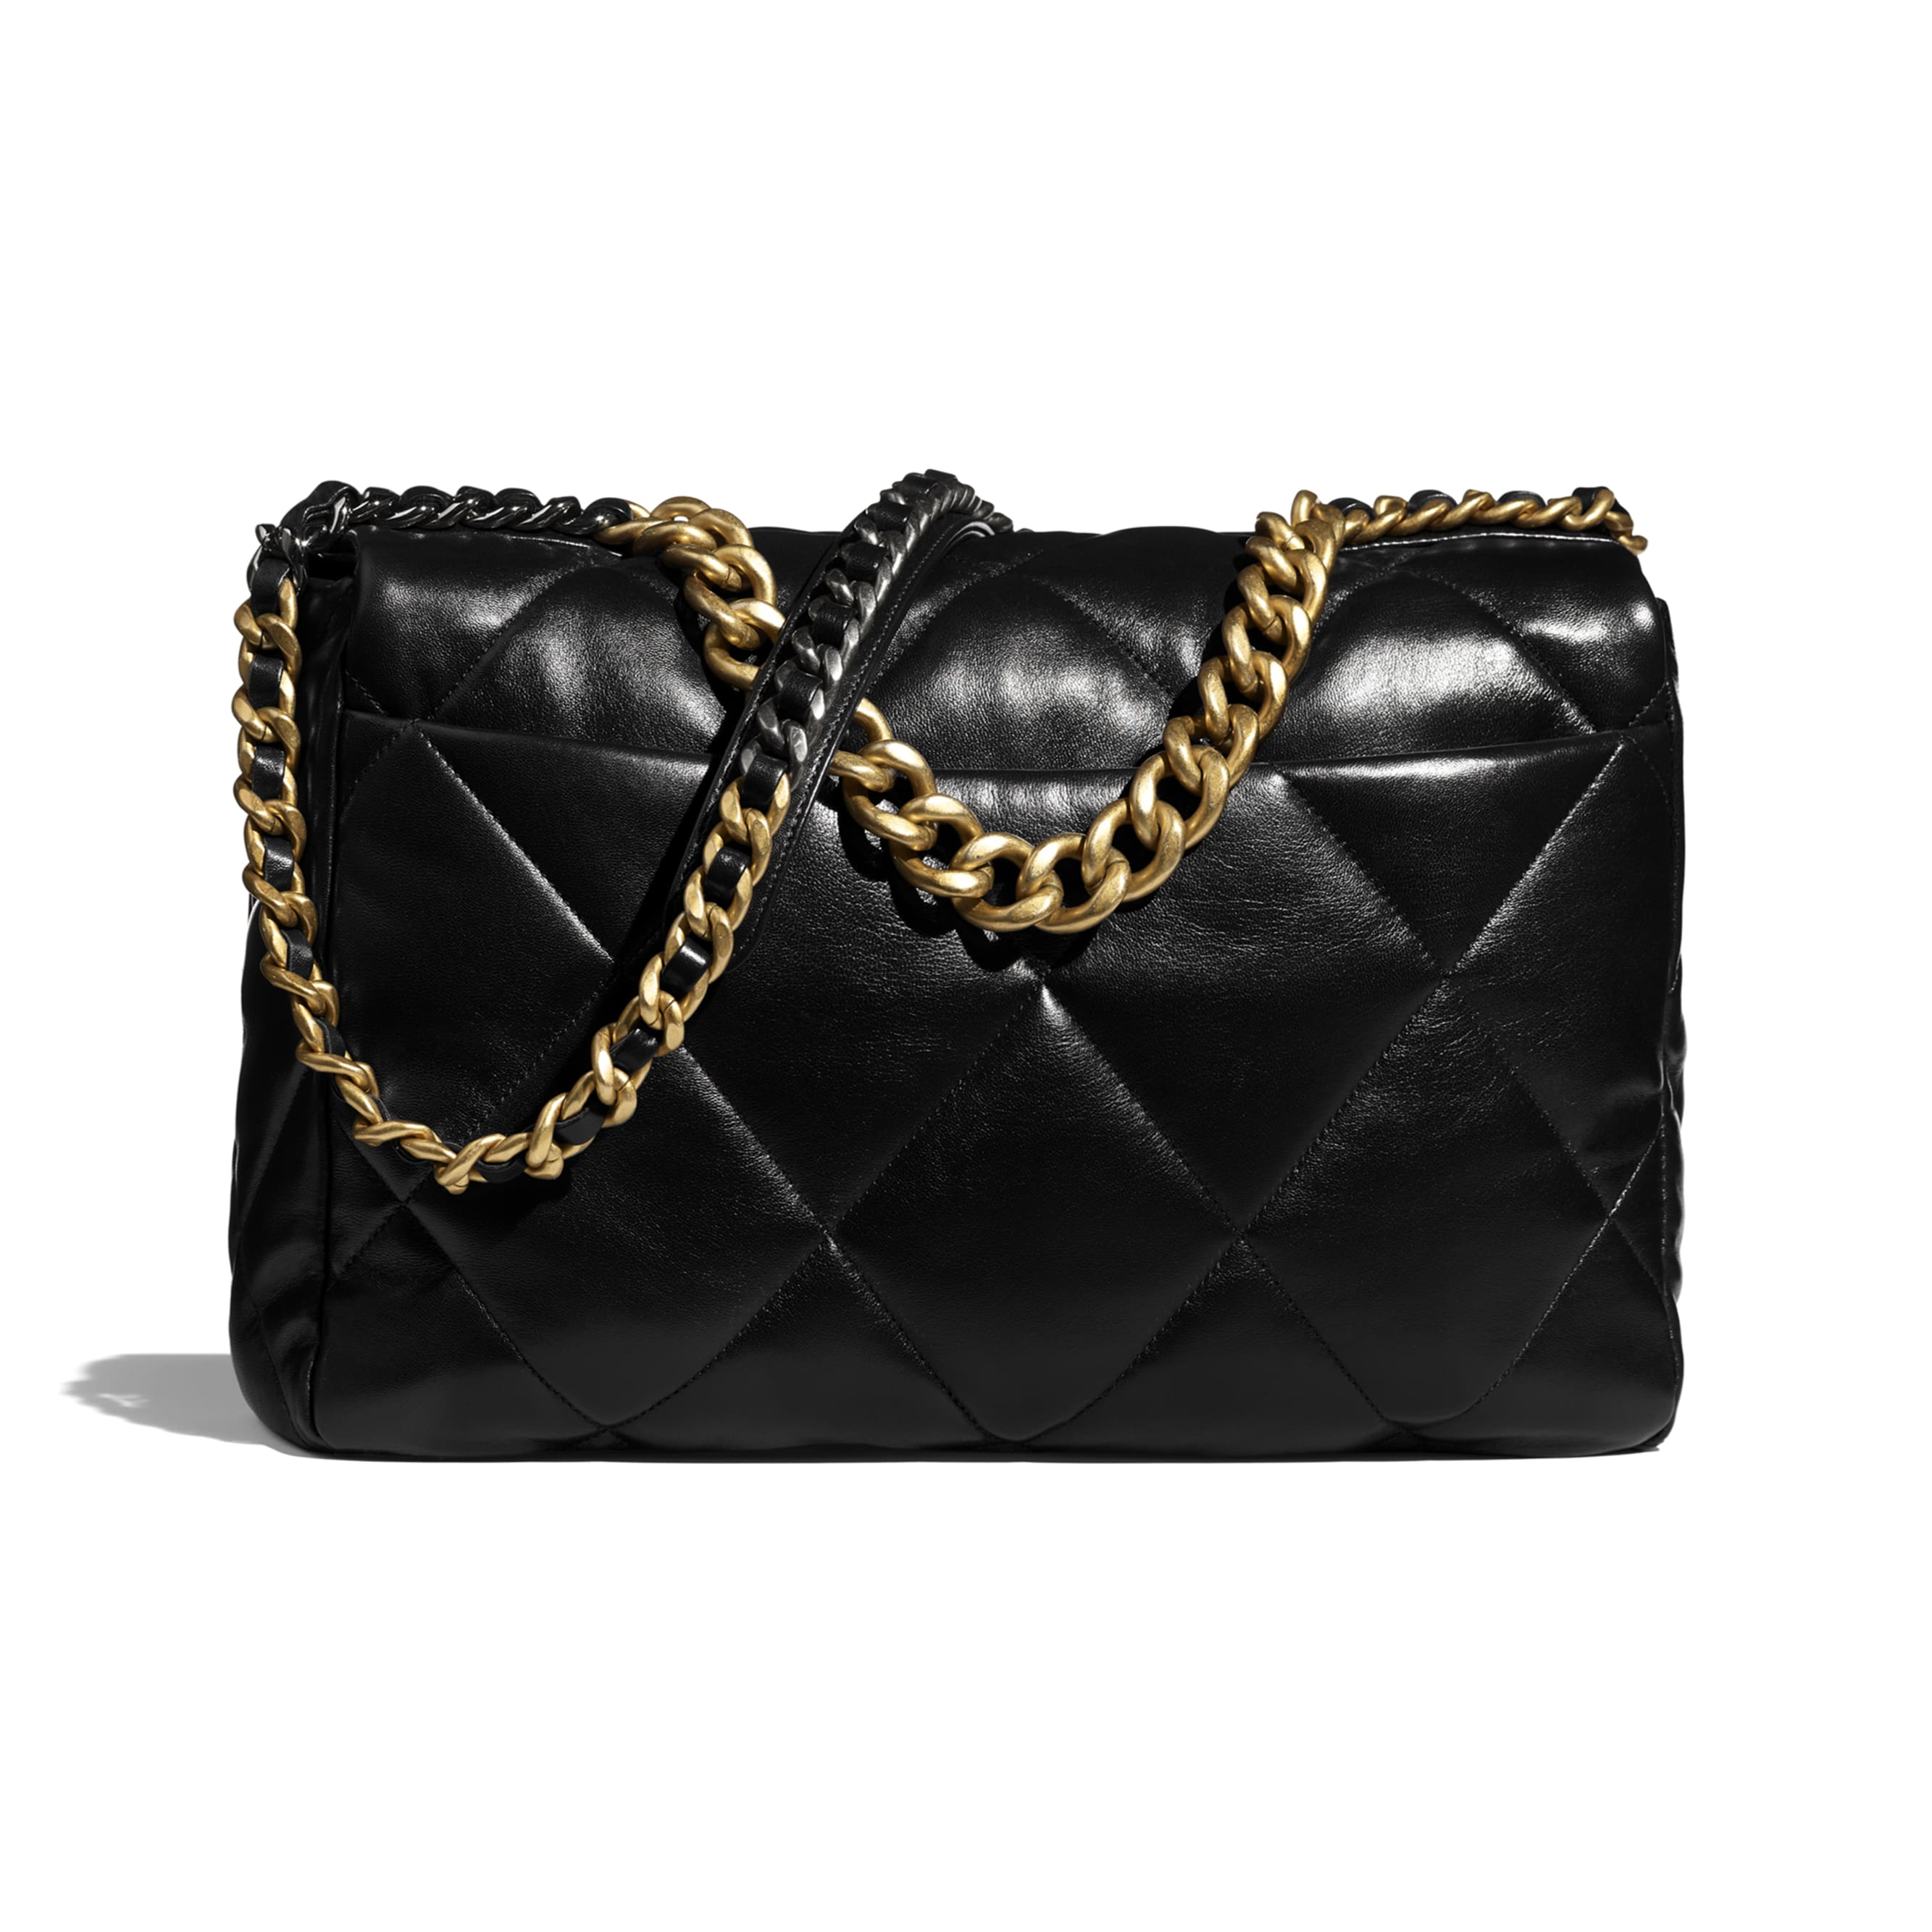 CHANEL 19 Maxi Handbag - Black - Lambskin, Gold-Tone, Silver-Tone & Ruthenium-Finish Metal - CHANEL - Alternative view - see standard sized version